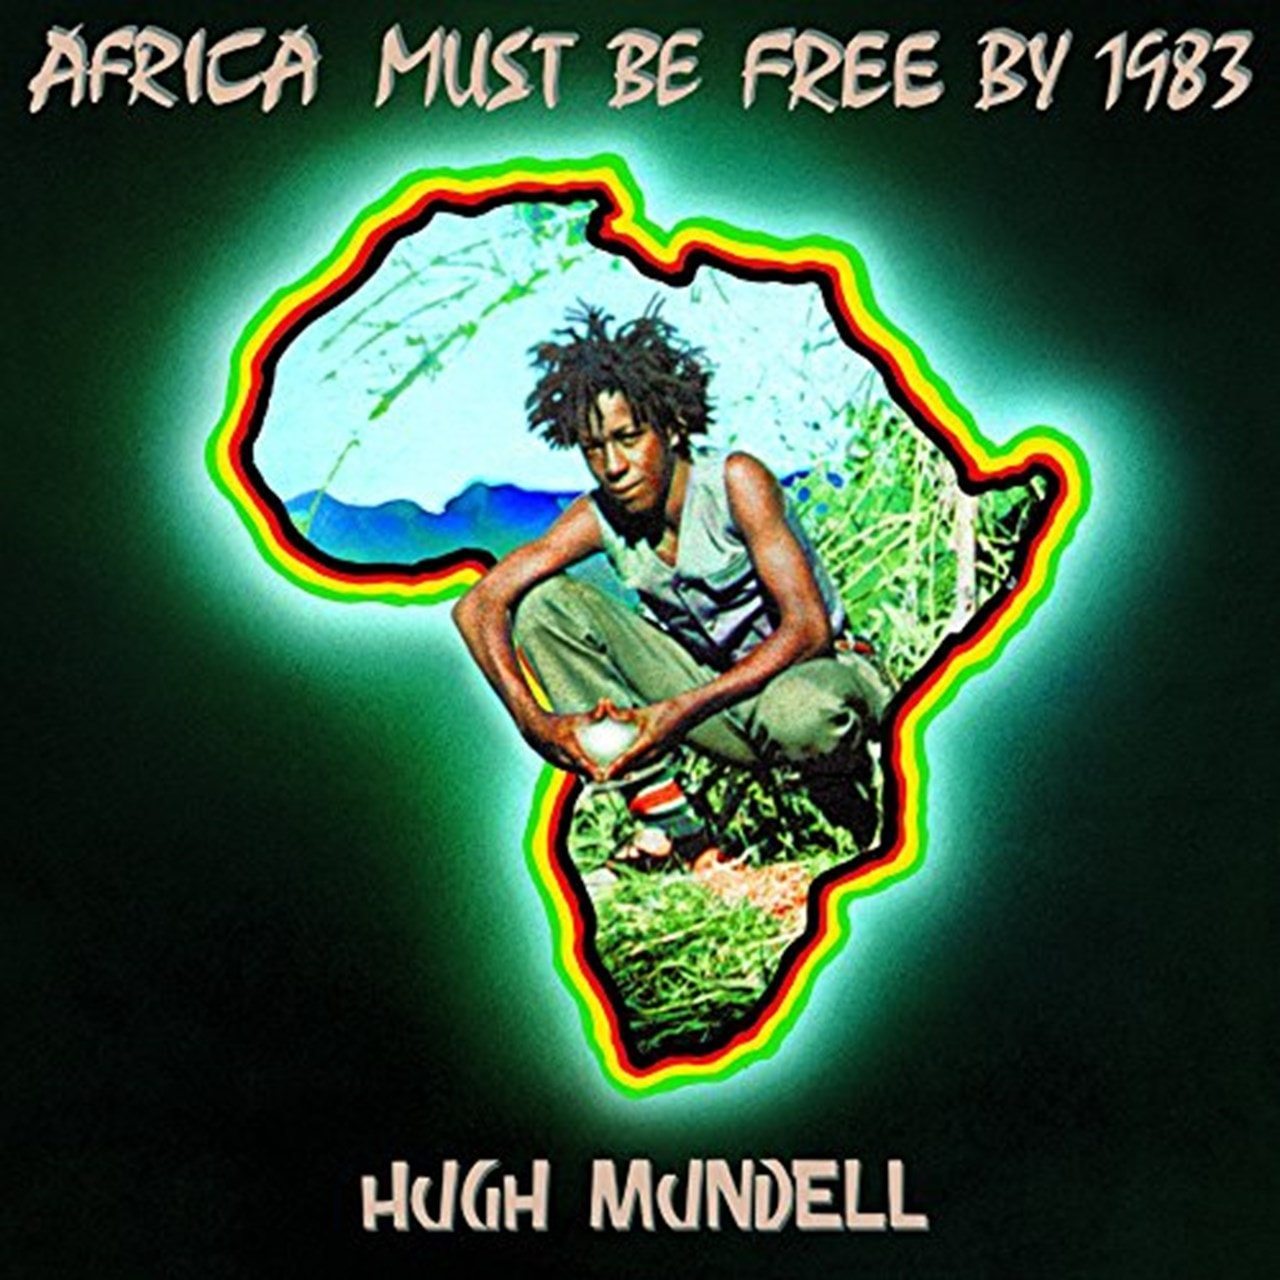 Africa Must Be Free By 1983 - 1